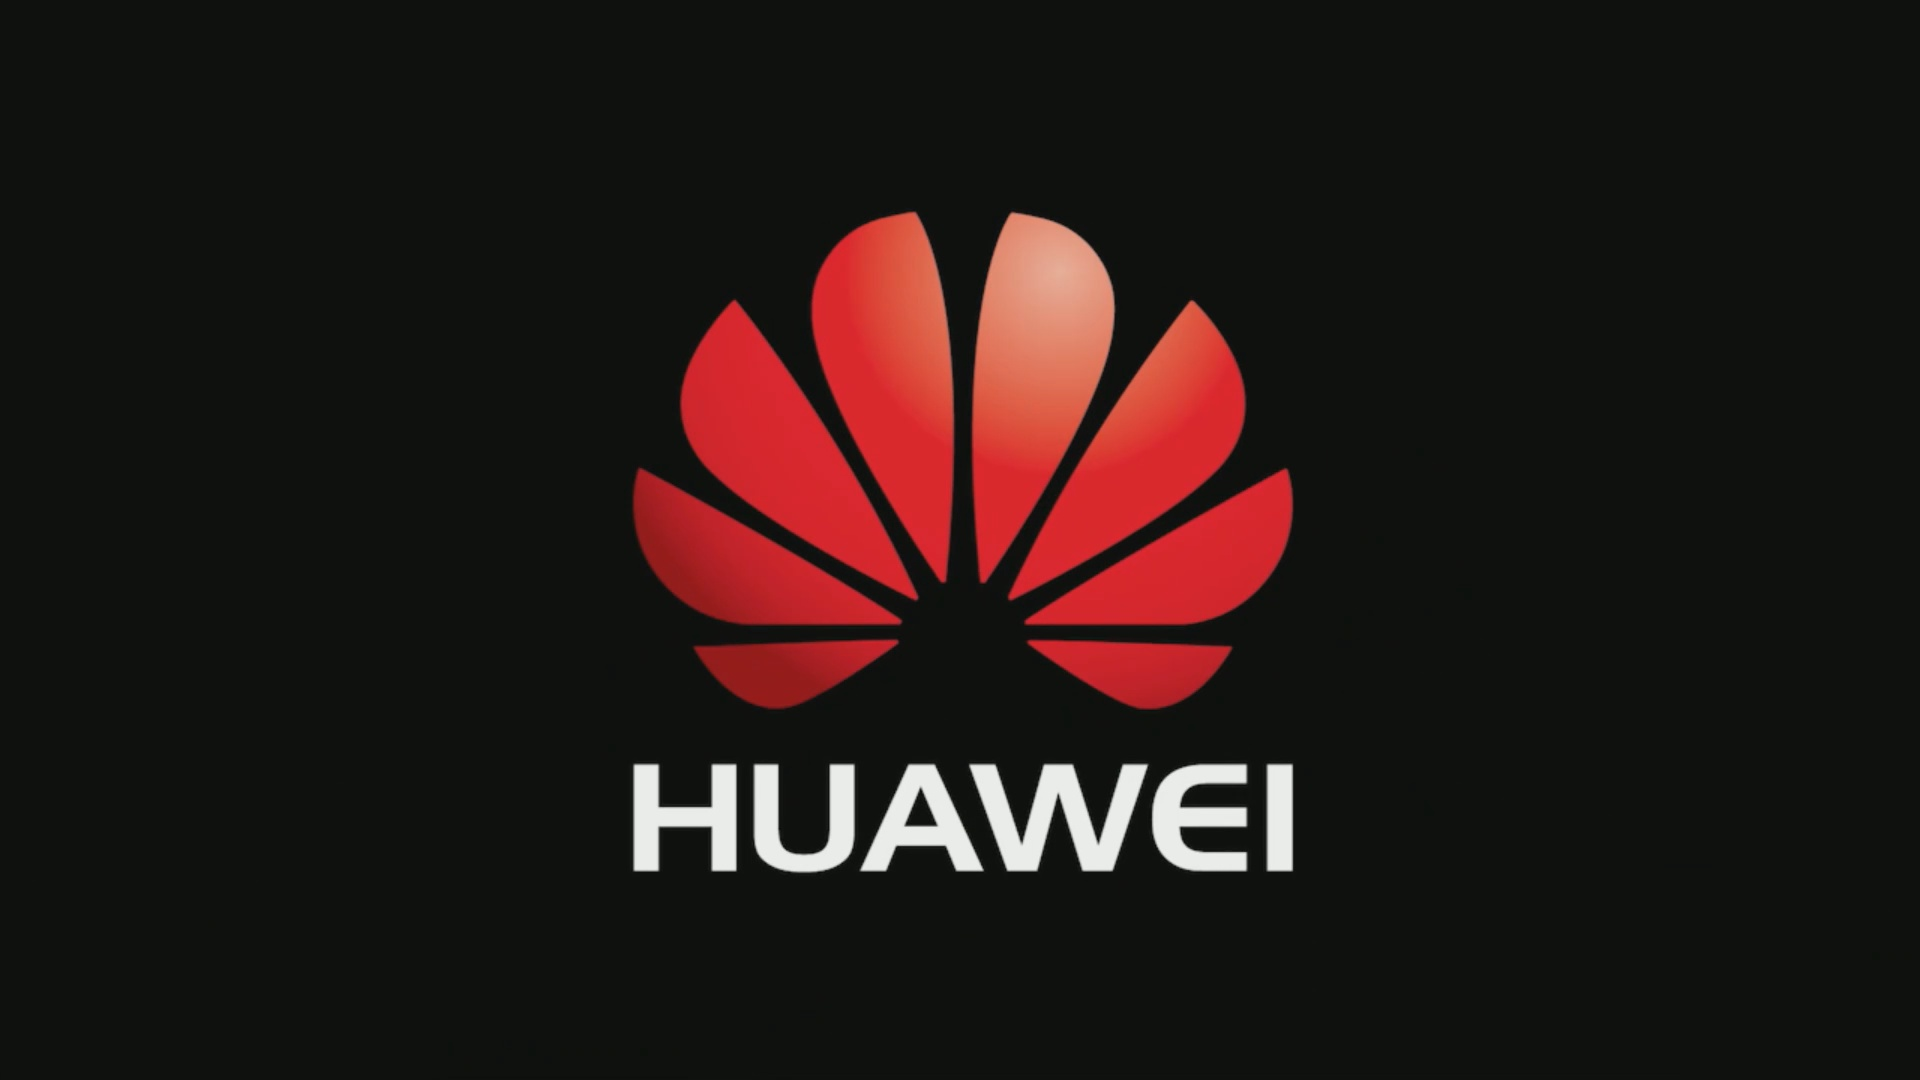 Huawei plant IT-Sicherheitszentrum in Brüssel